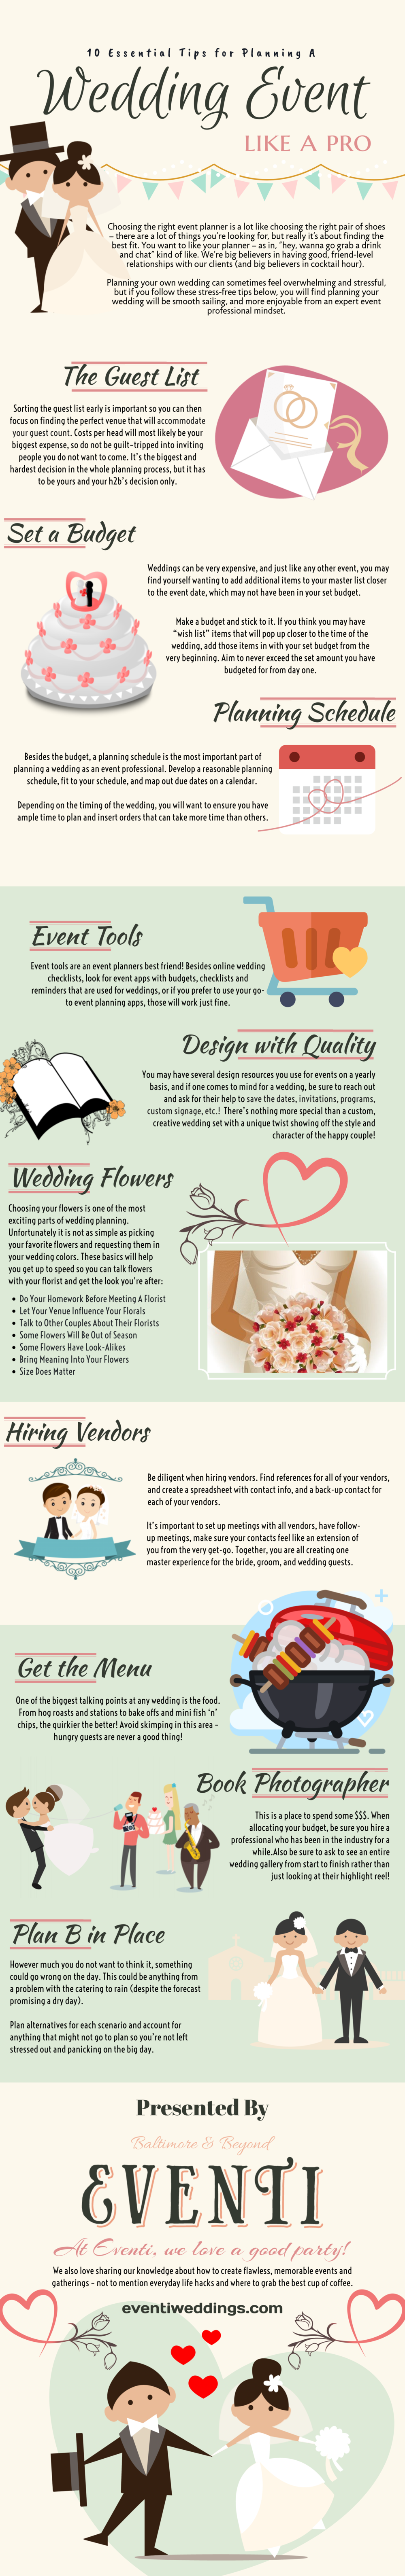 10 Essential Tips For Planning A Wedding Event Like A Pro Infographic.png